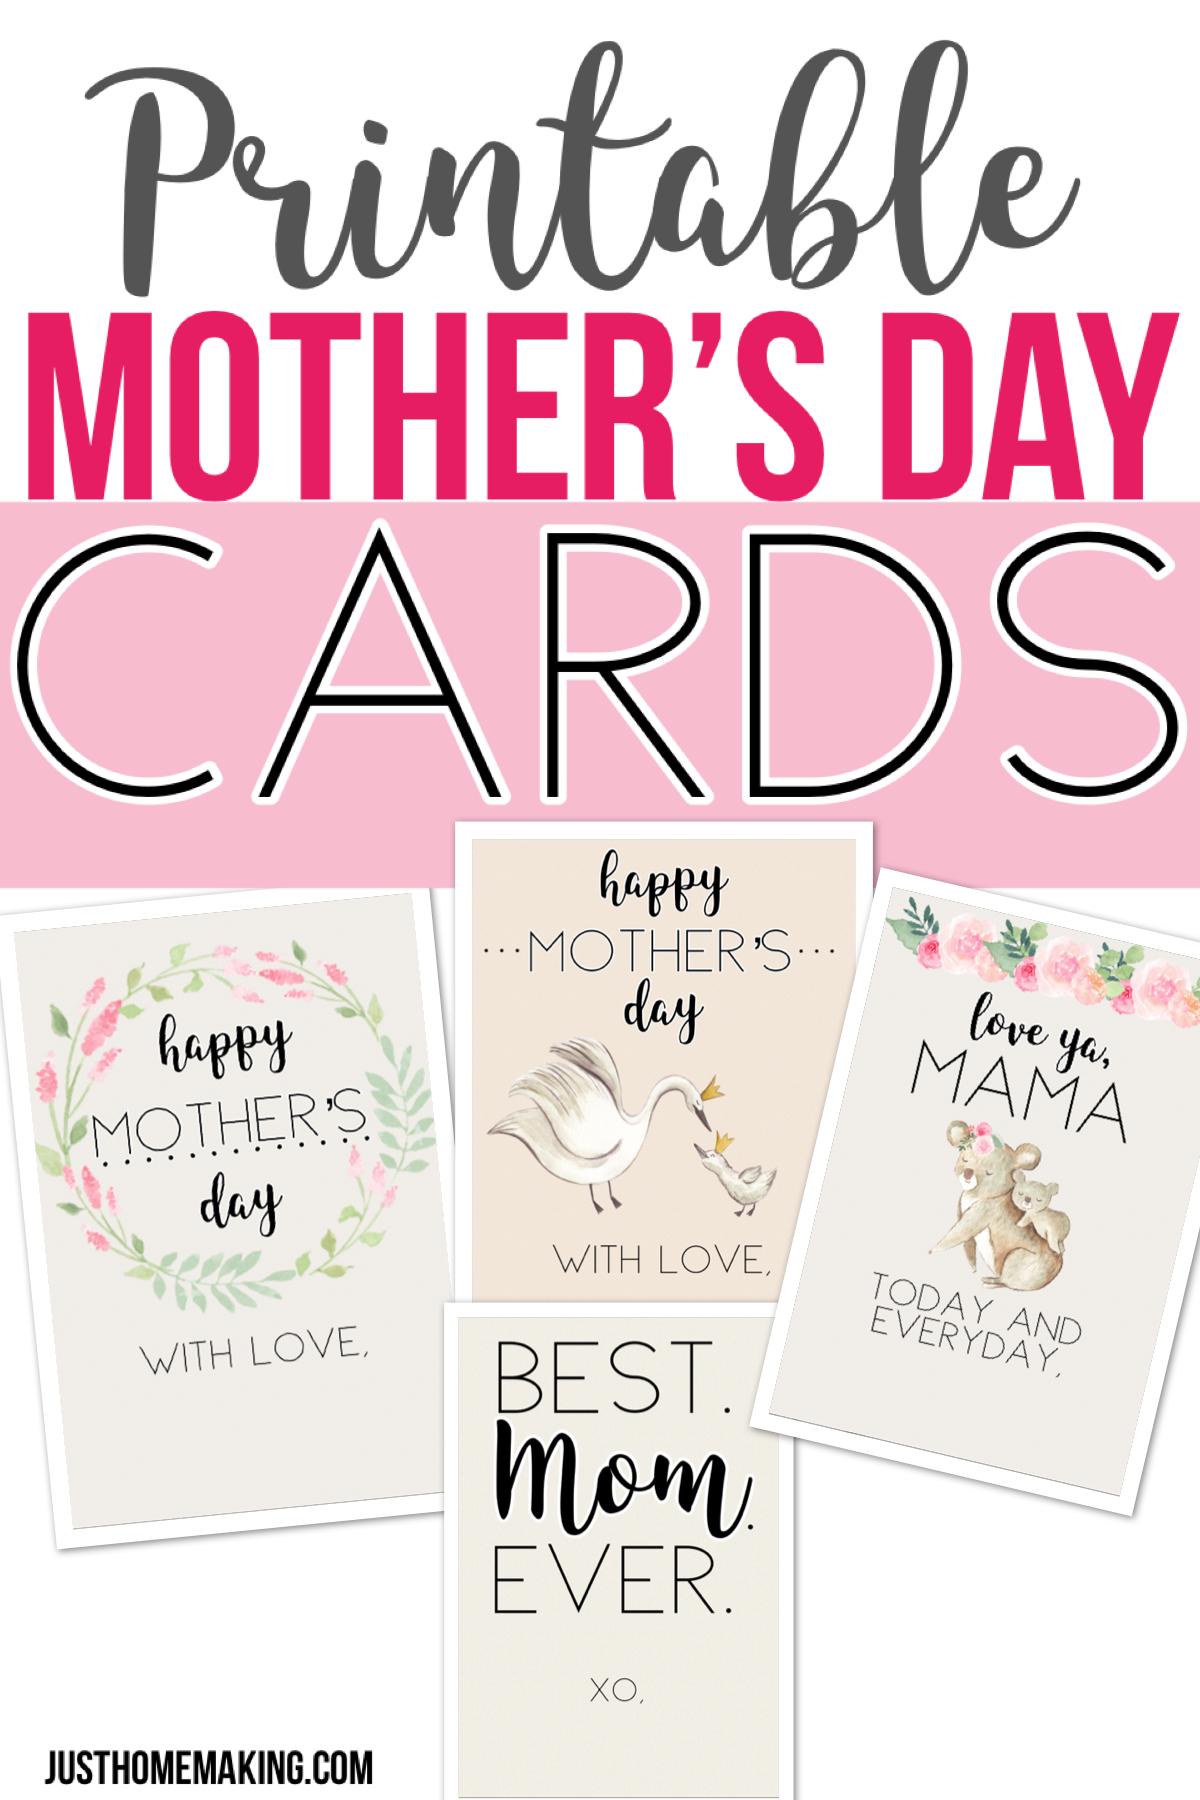 Free Printable Mother S Day Cards Mothers Day Cards Mothers Day Card Template Mothers Day Cards Printable